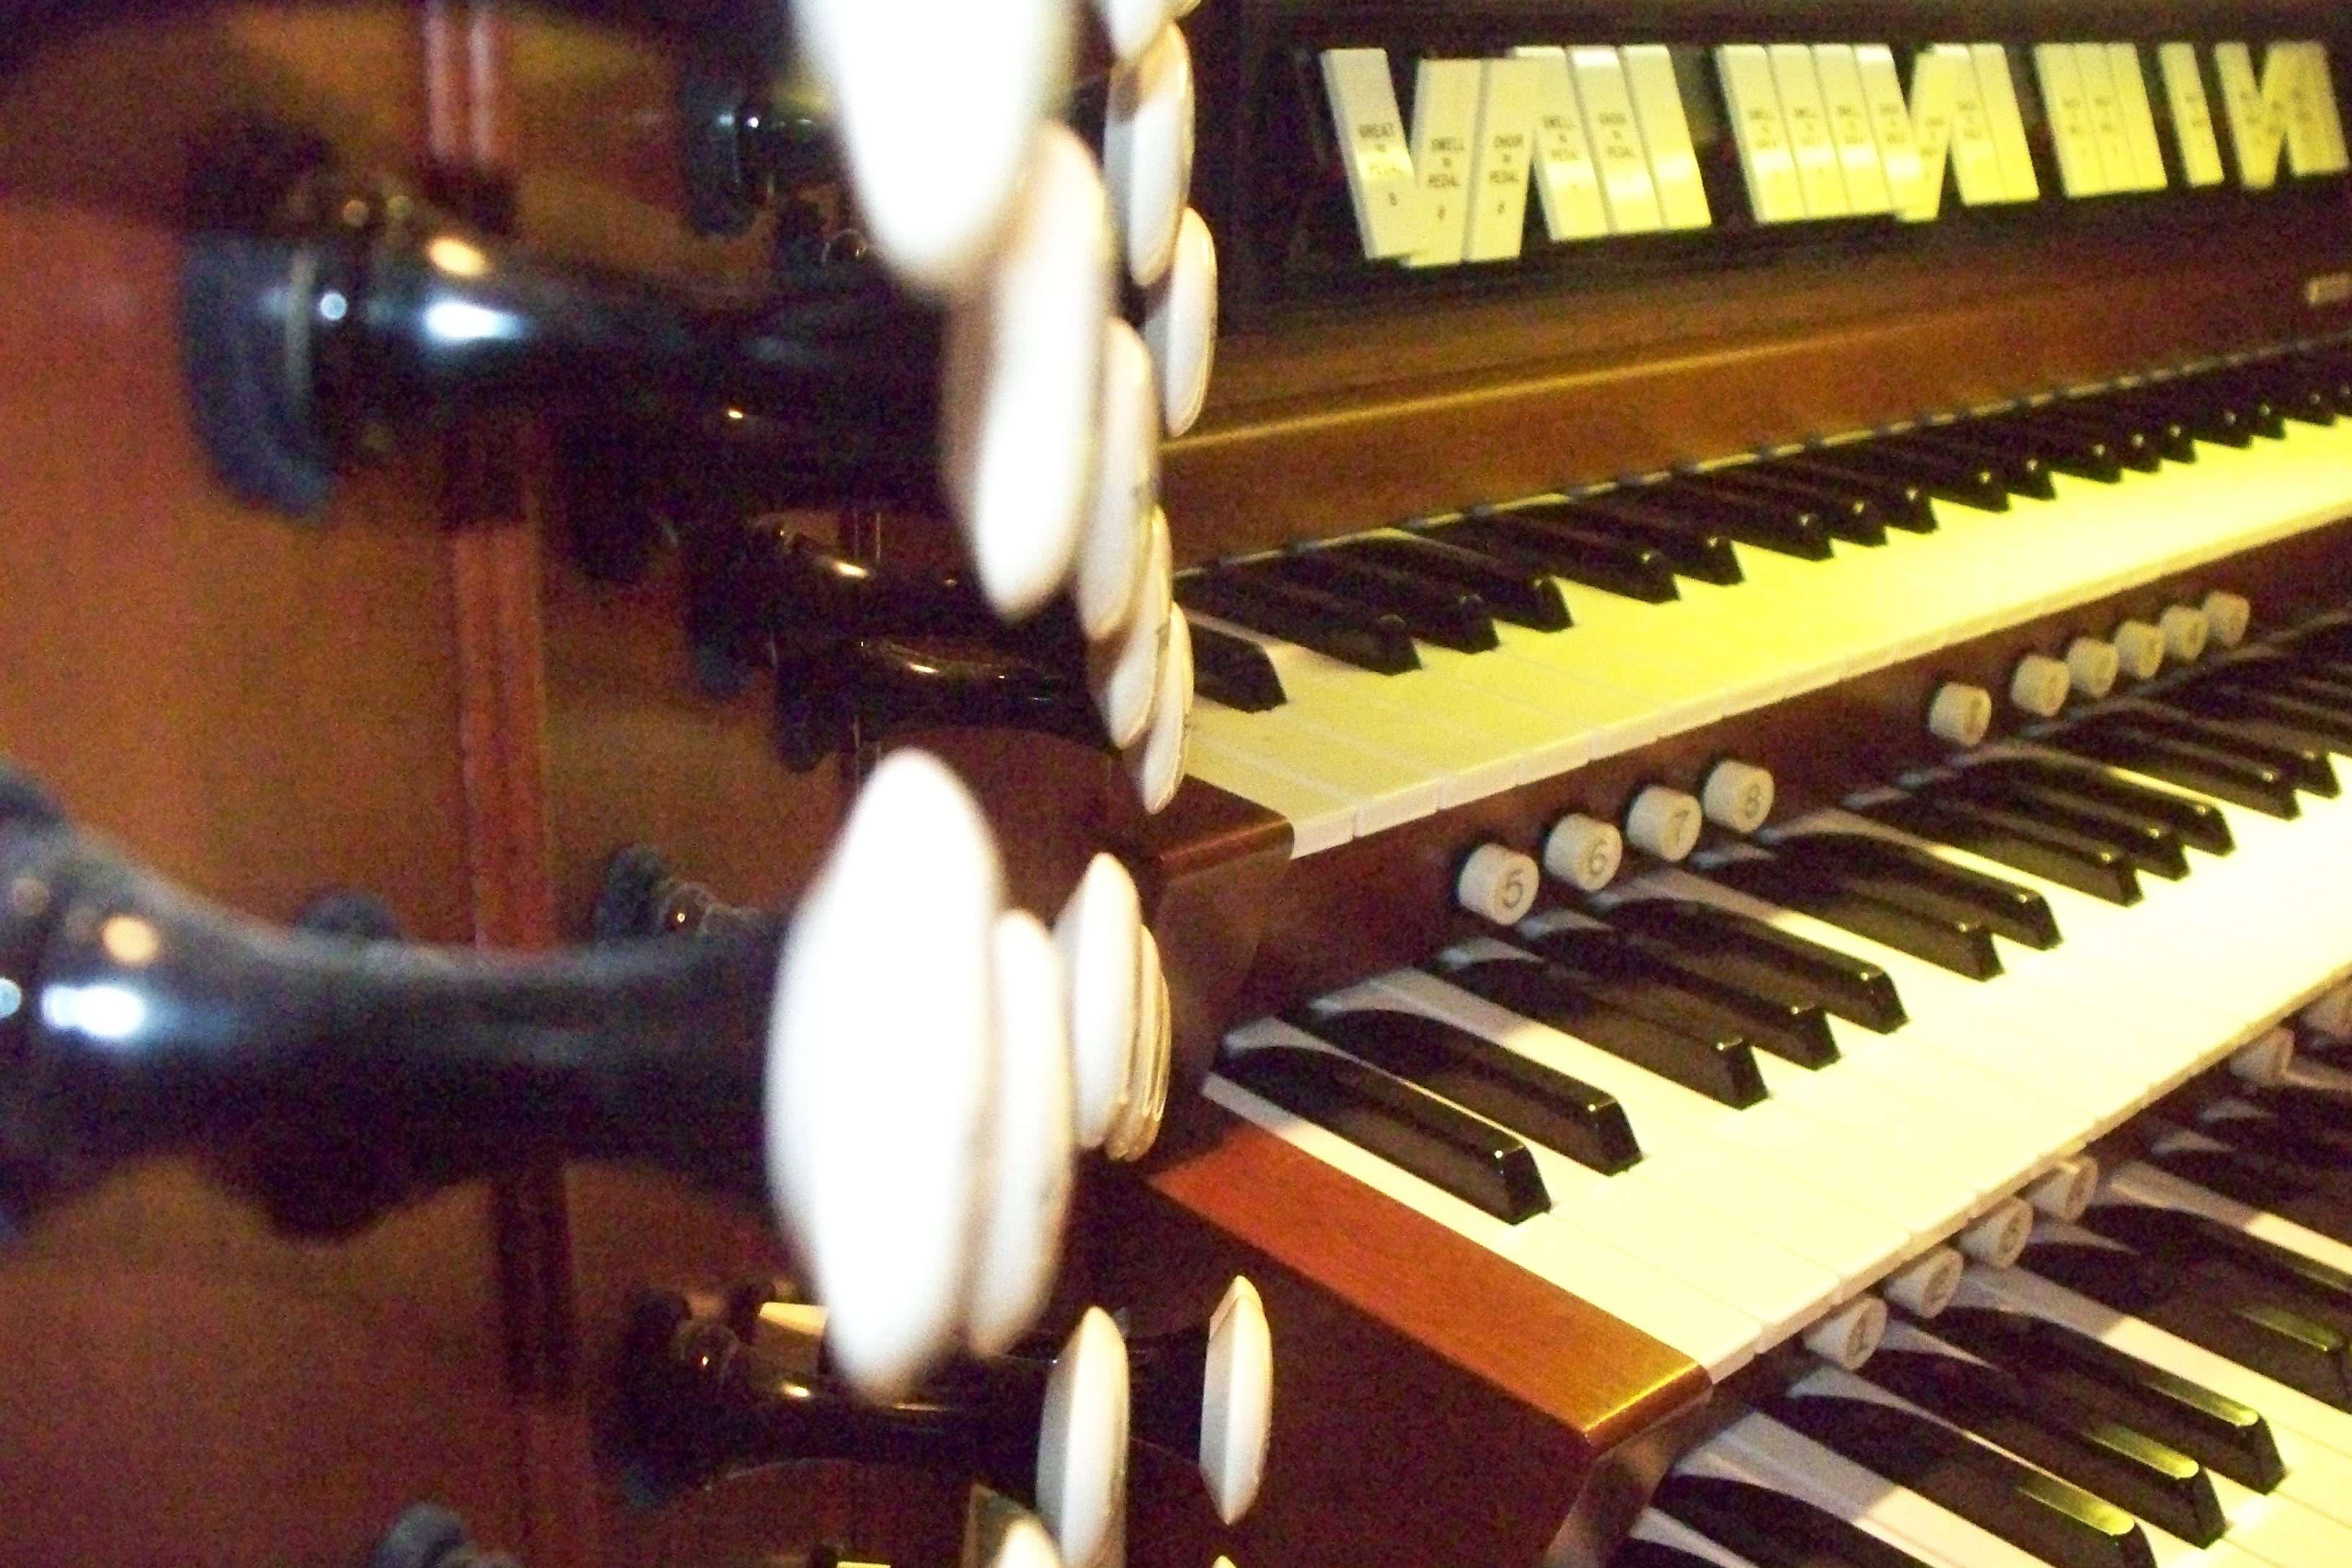 24-rank pipe organ